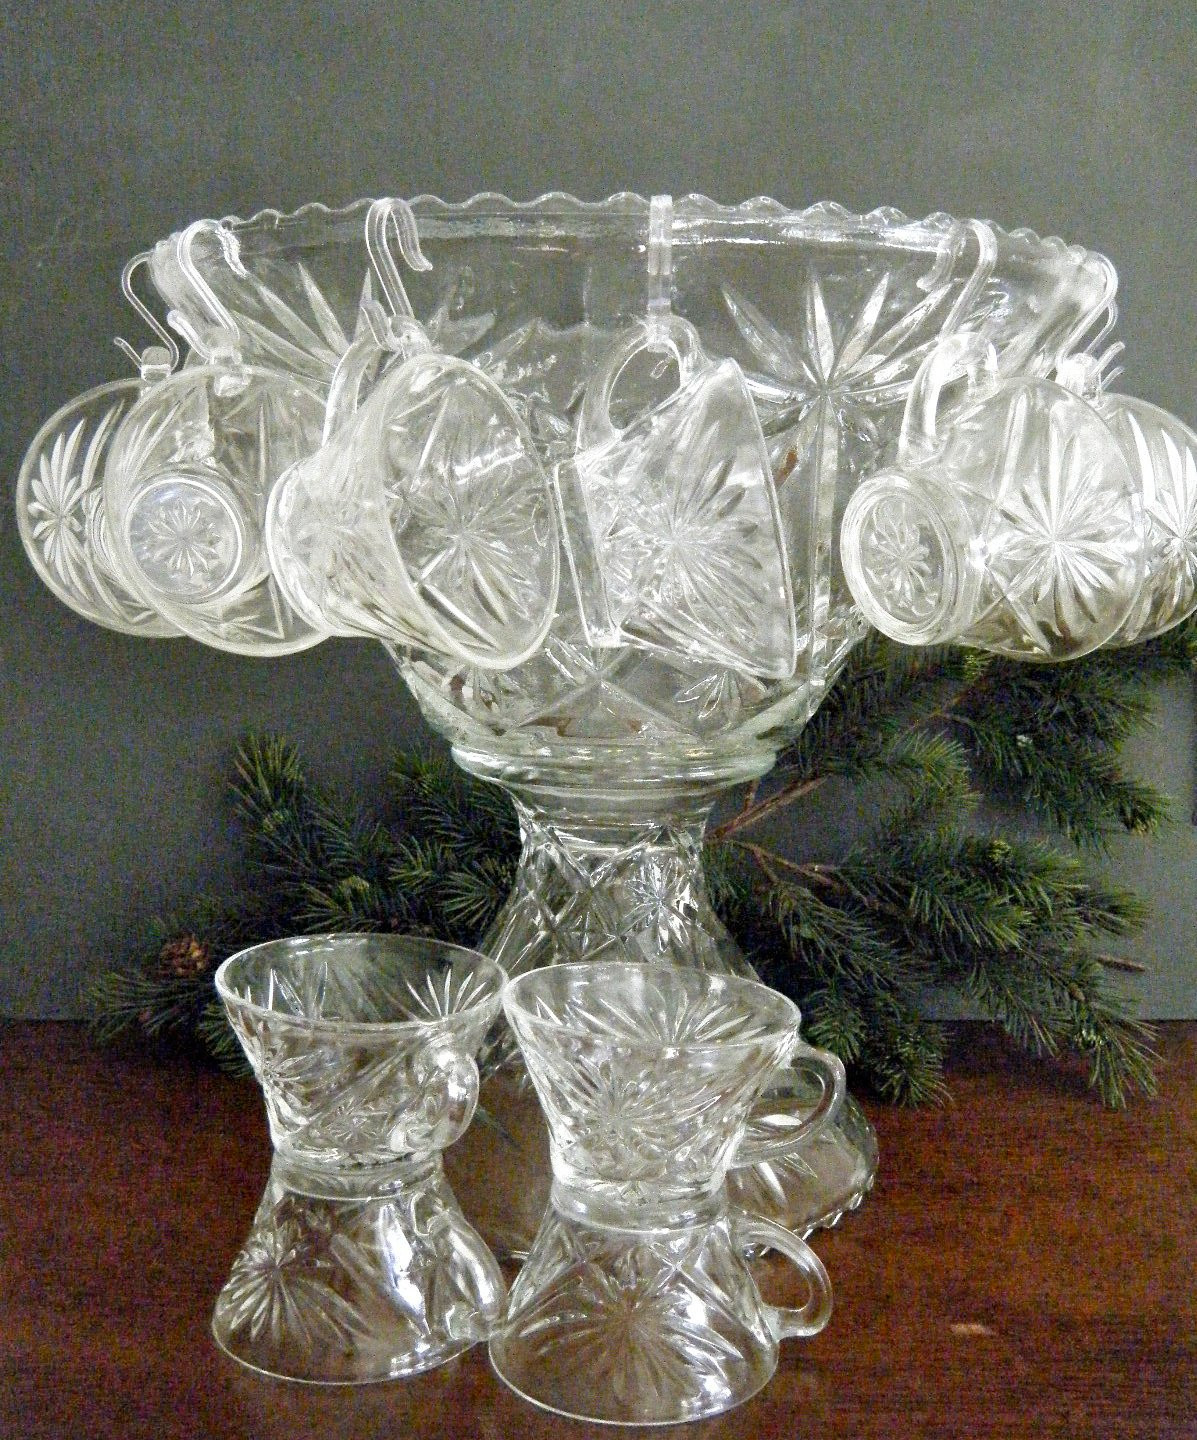 Crystal Wedding Oats  Early American Prescut Punch Bowl Set Bowl on Pedestal